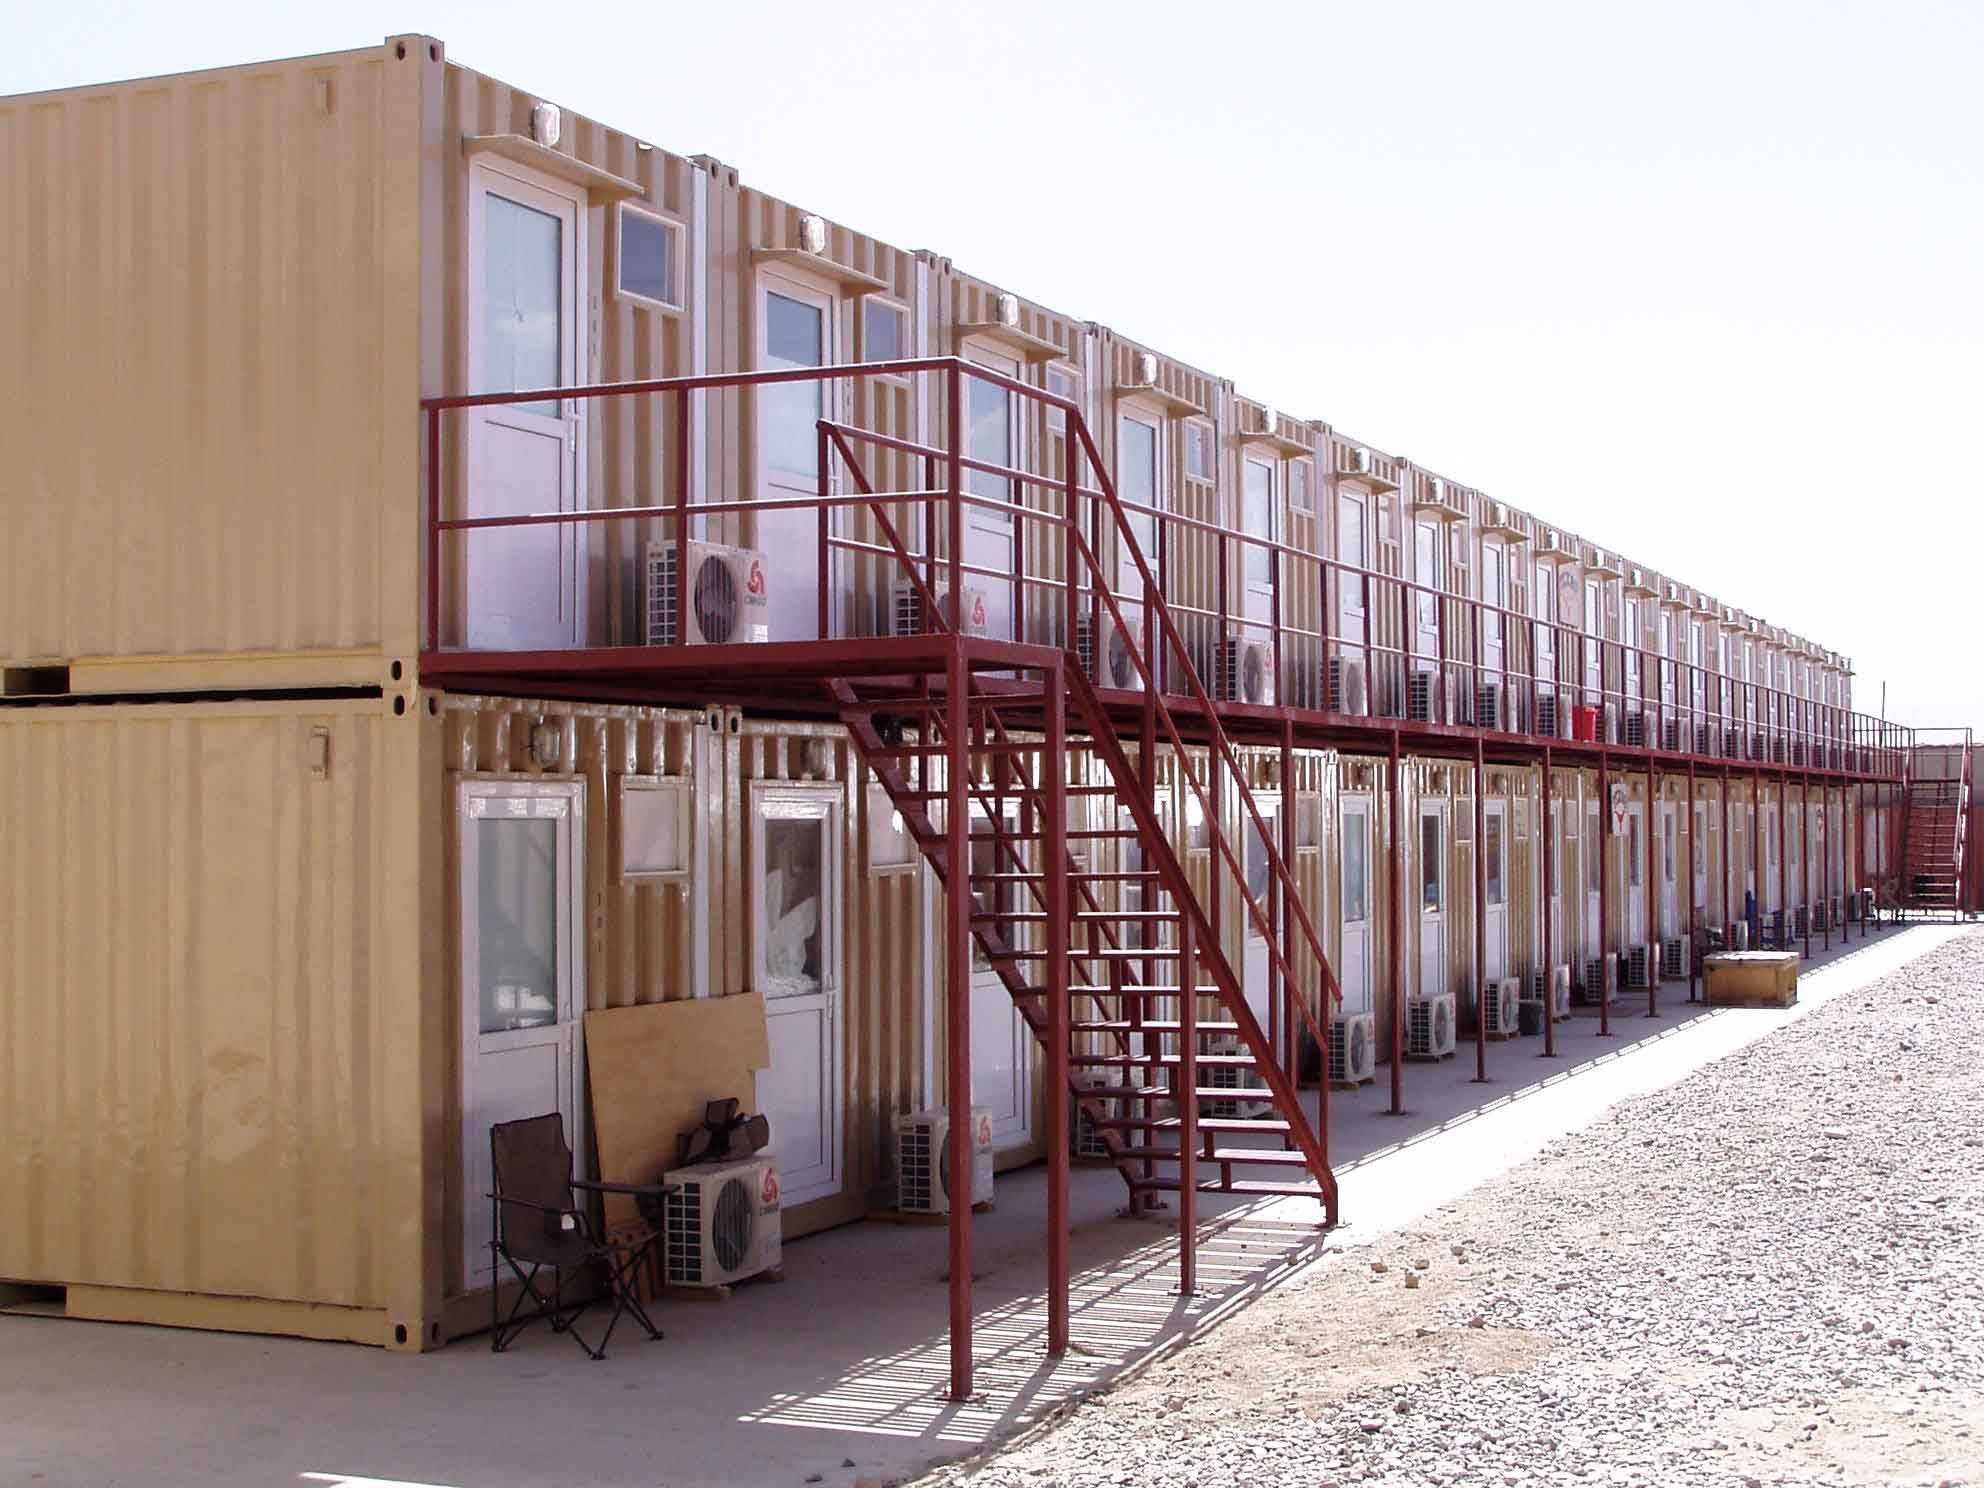 Cheap Student Housing Container Homes | student housing ...